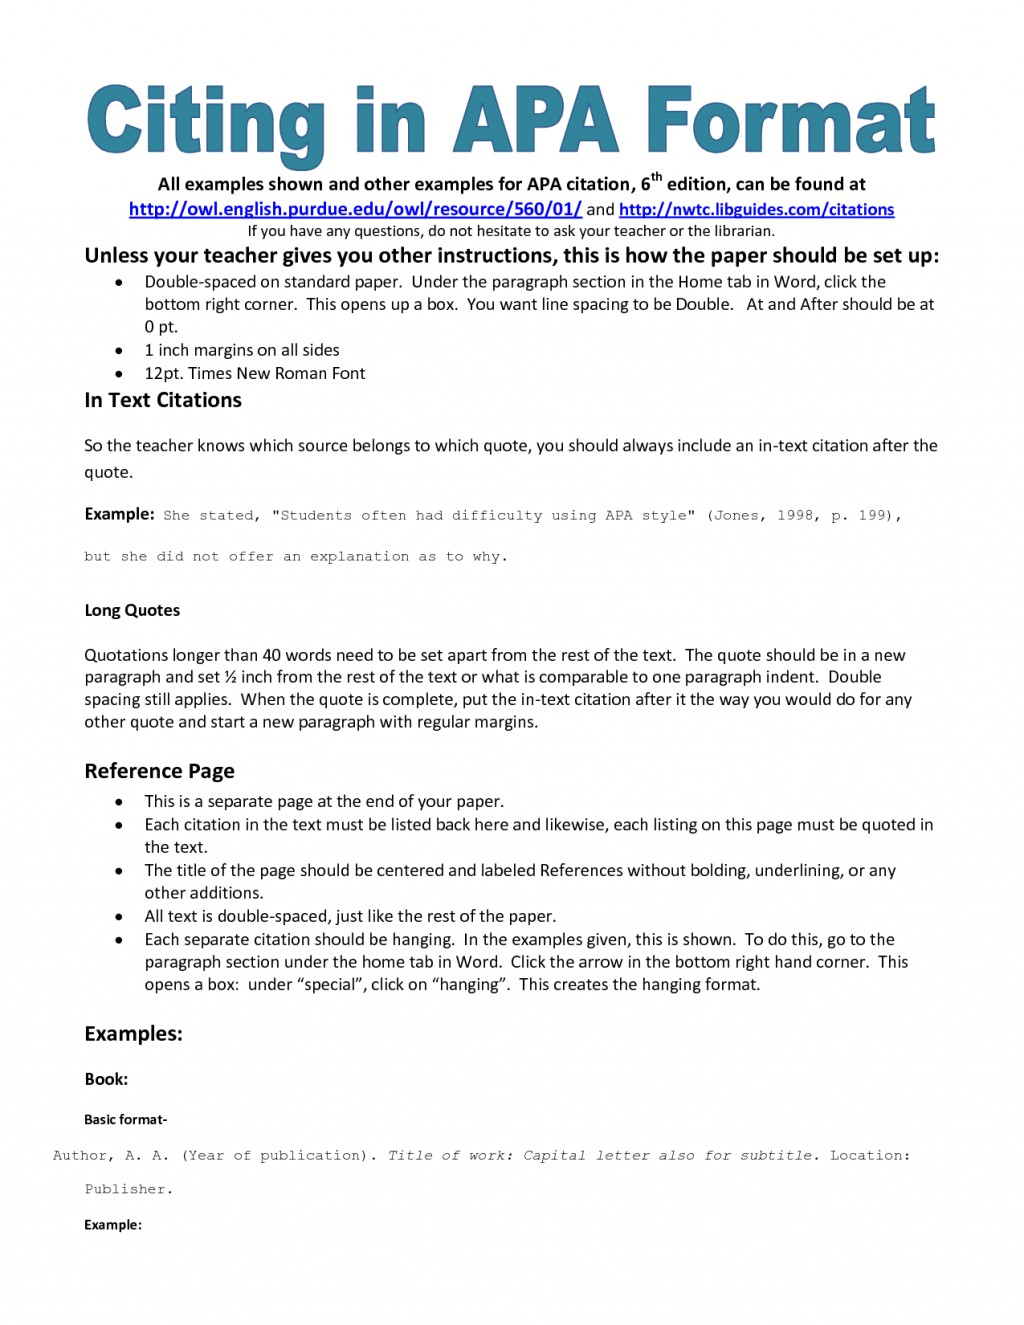 006 Apa Essay Format Breathtaking Research Paper Word Reference Page Template Large